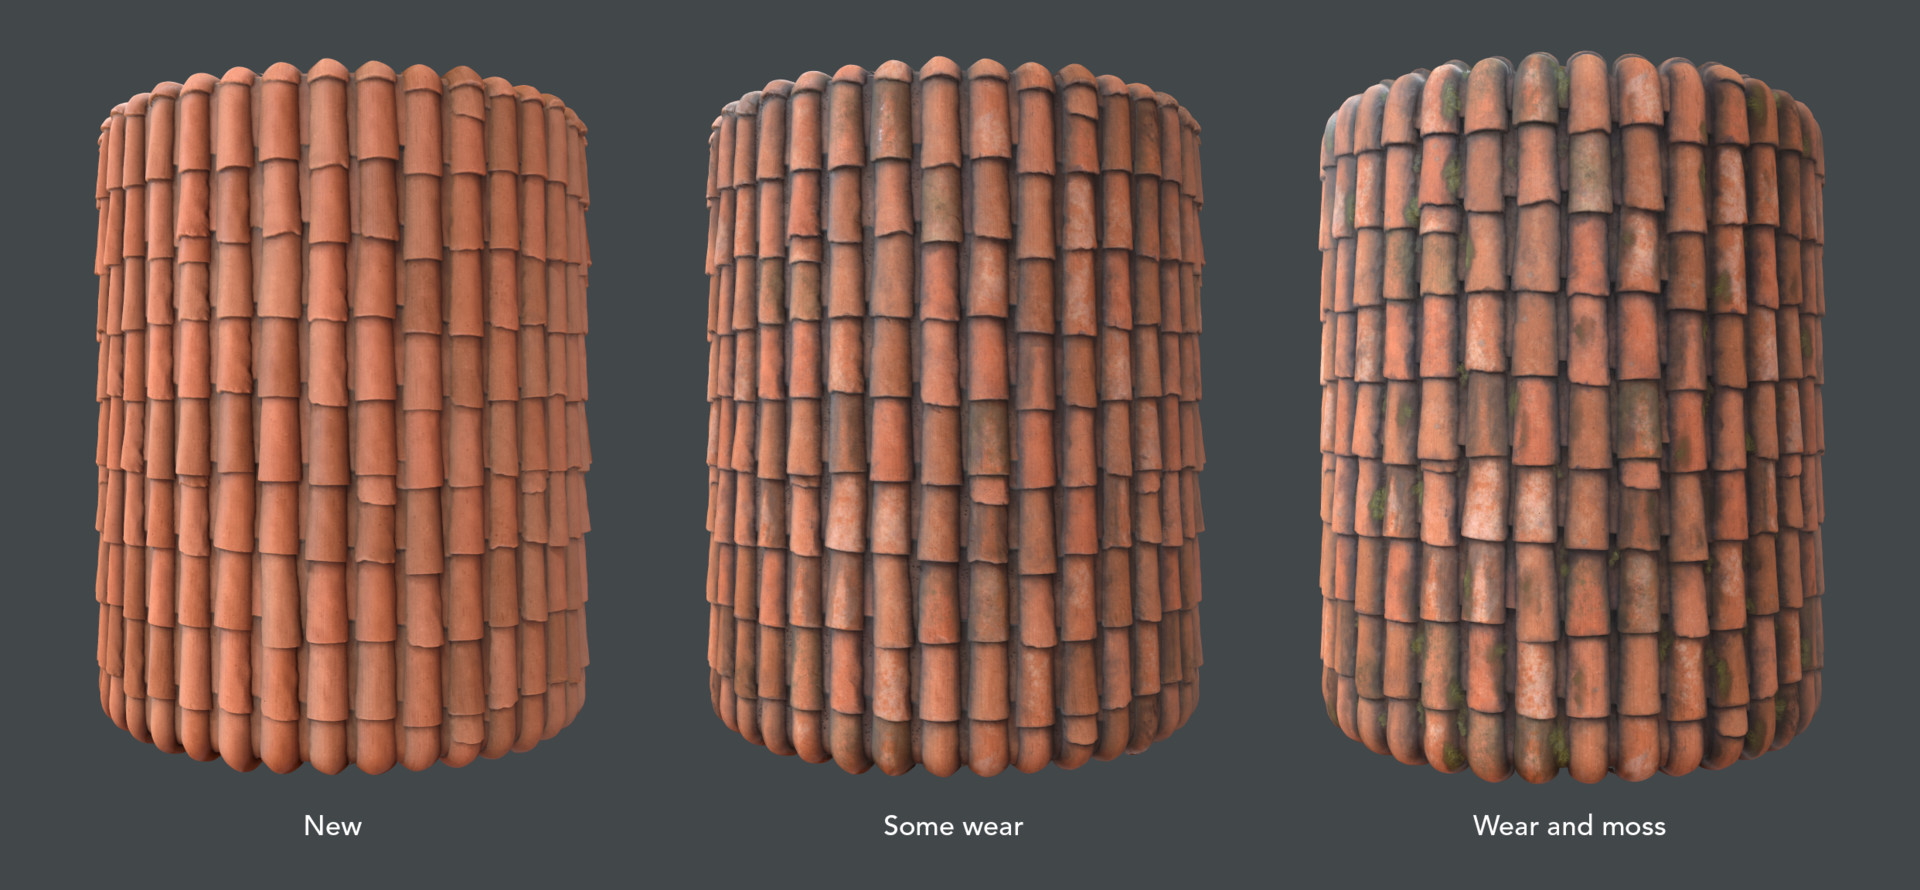 Alina godfrey roof tiles color variations